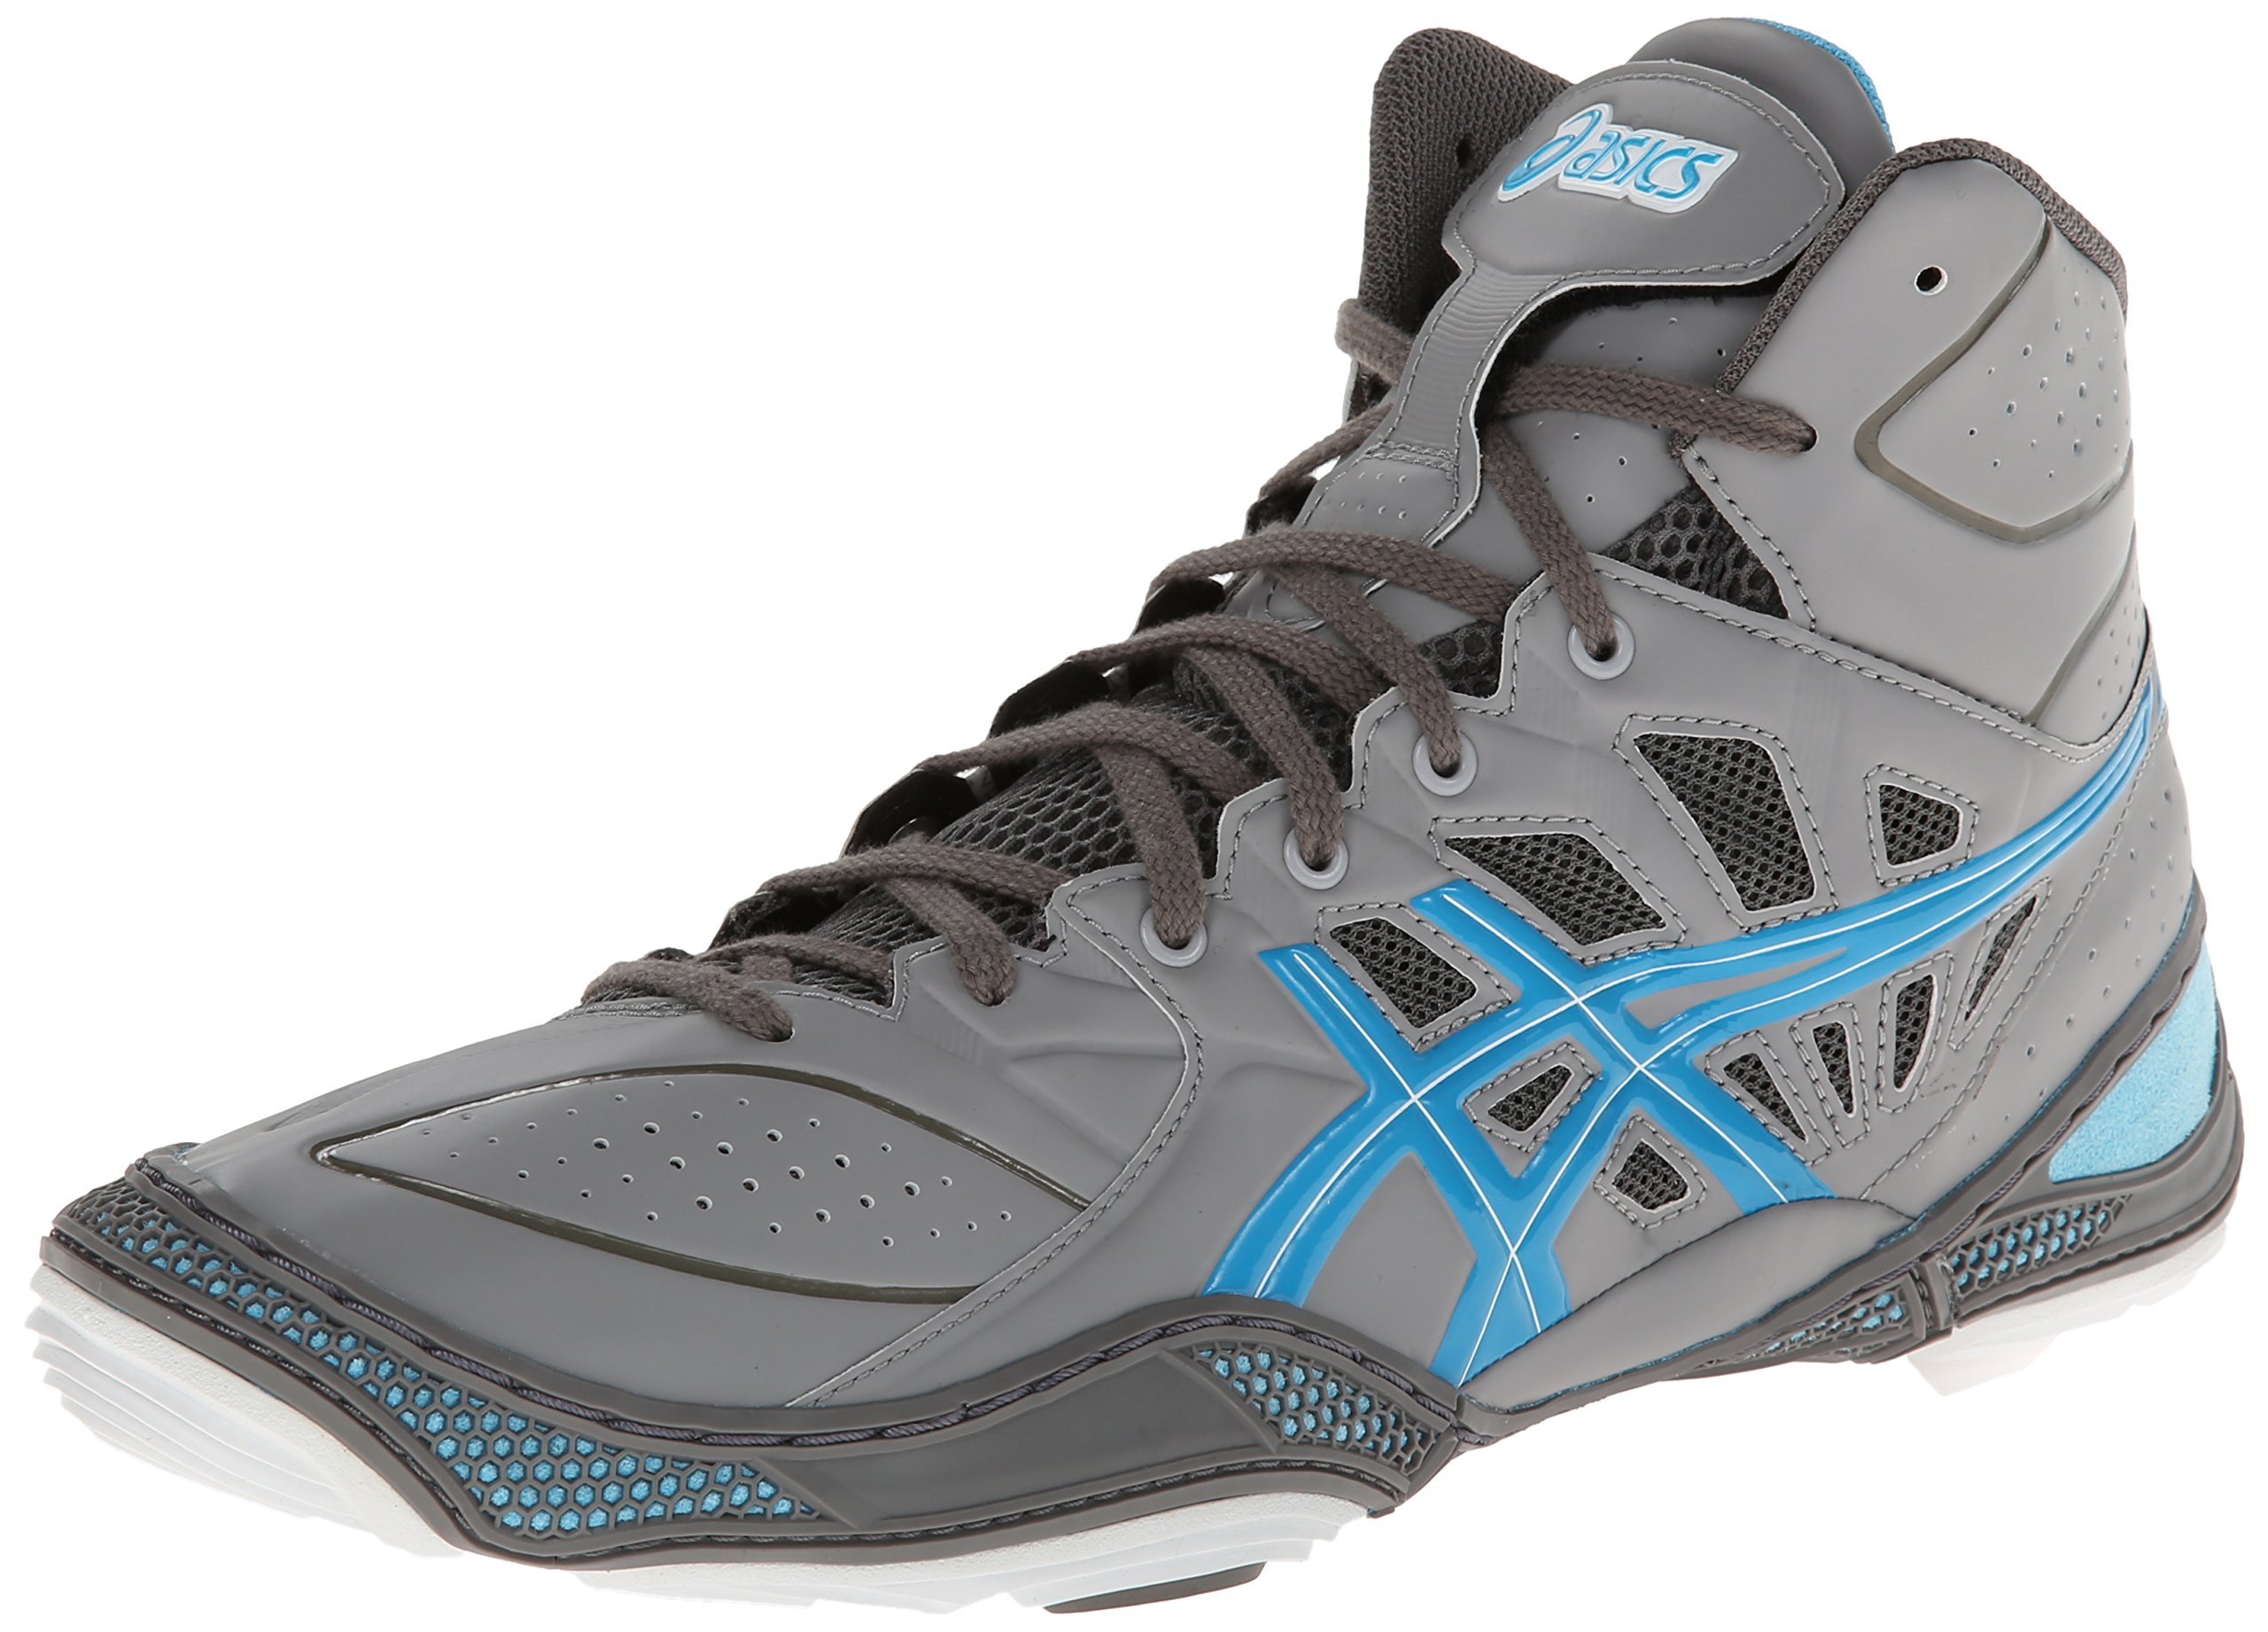 Asics Men's Dan Gable Ultimate 3 Wrestling Shoe,Silver/Malibu/White,10 M US by ASICS